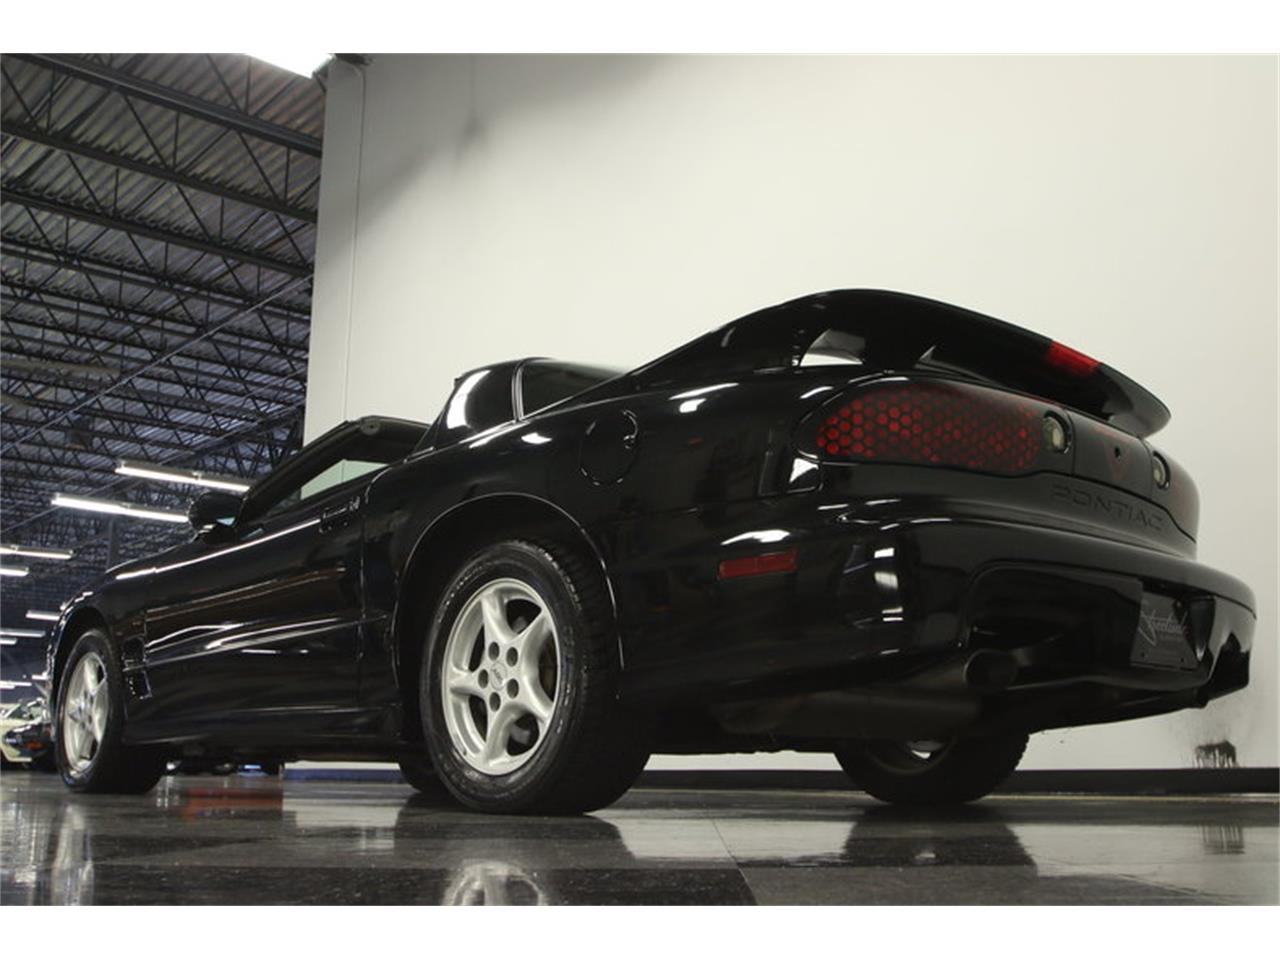 Large Picture of '98 Firebird Trans Am located in Lutz Florida - $18,995.00 - M9OB